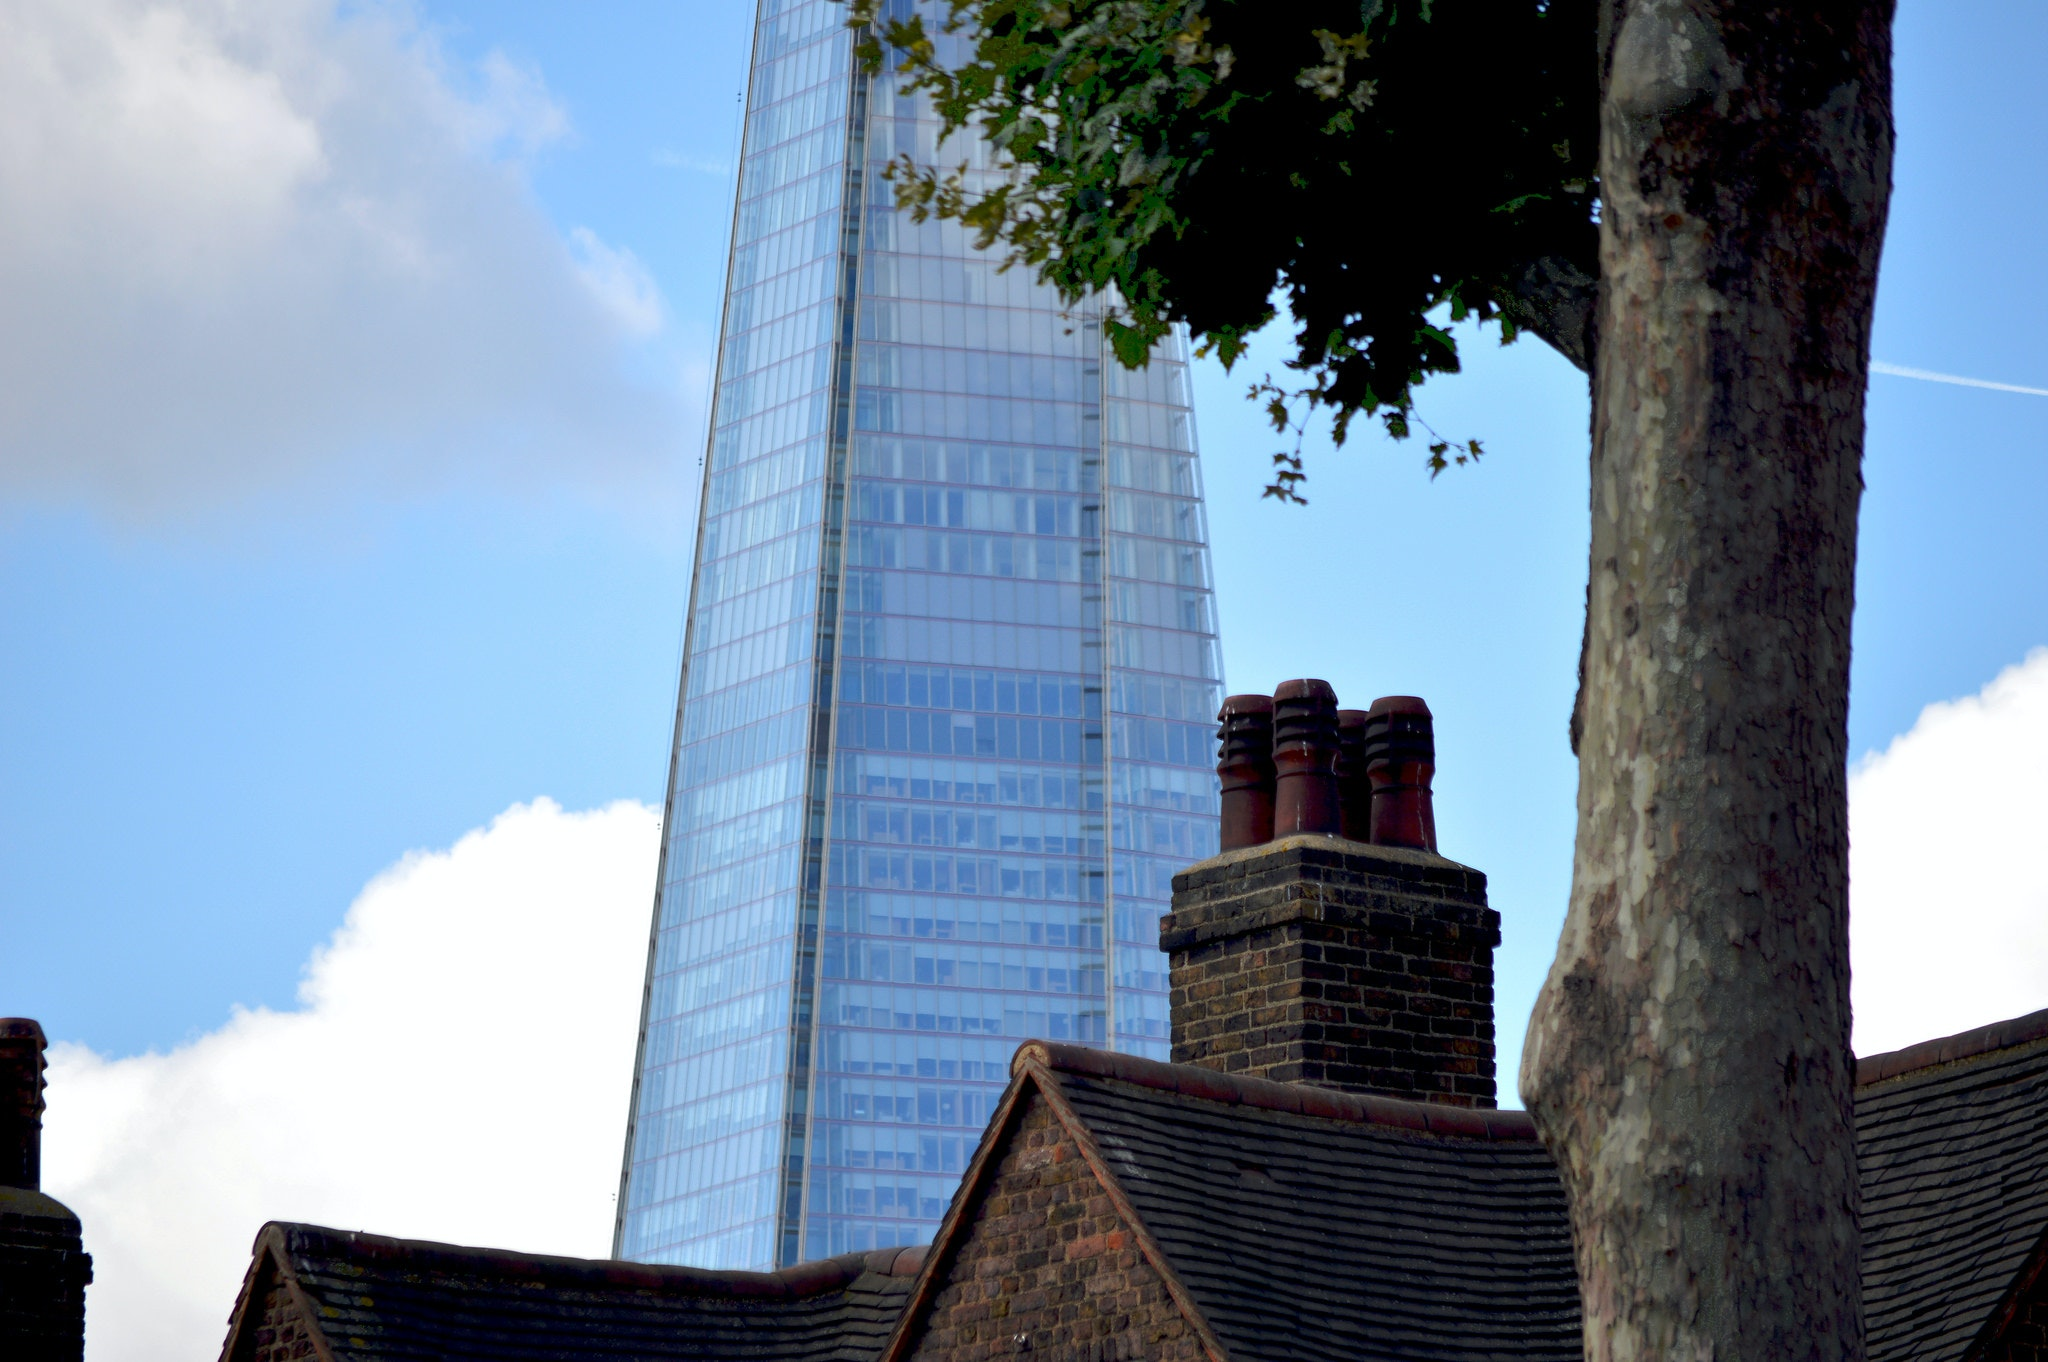 Climate change means we can't keep living (and working) in glass houses